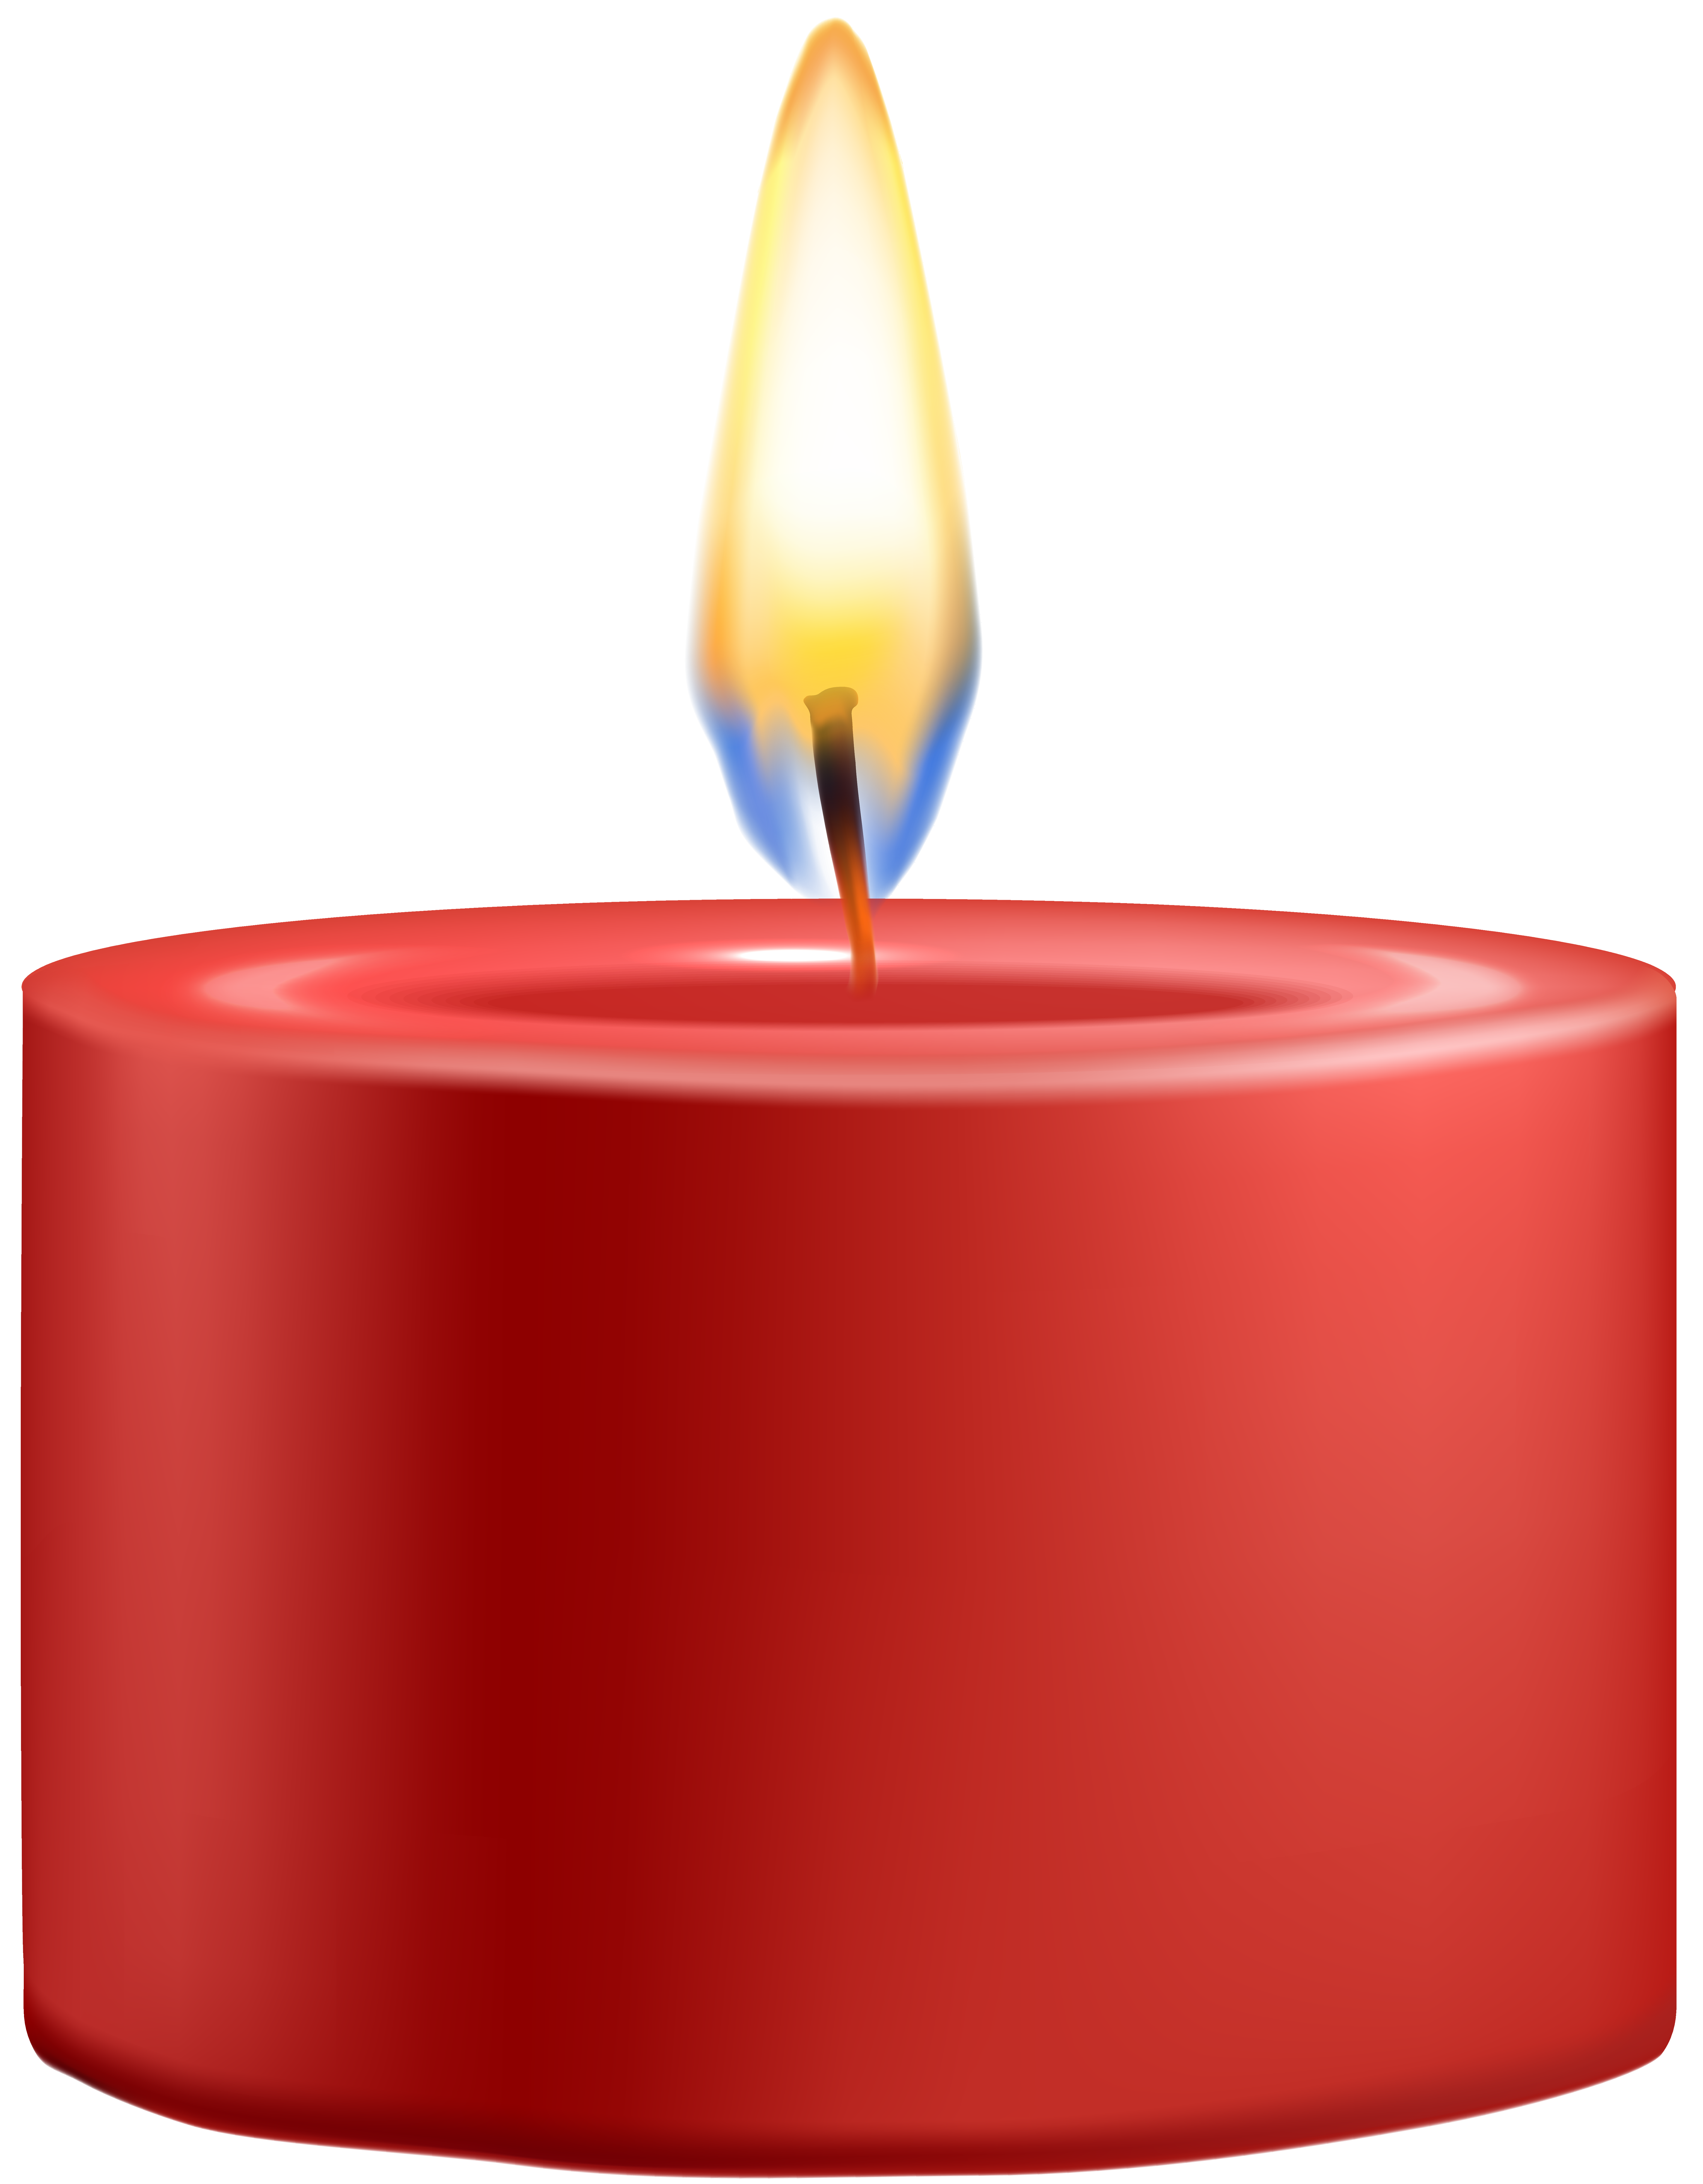 Red clip art best. Candle png clipart free download